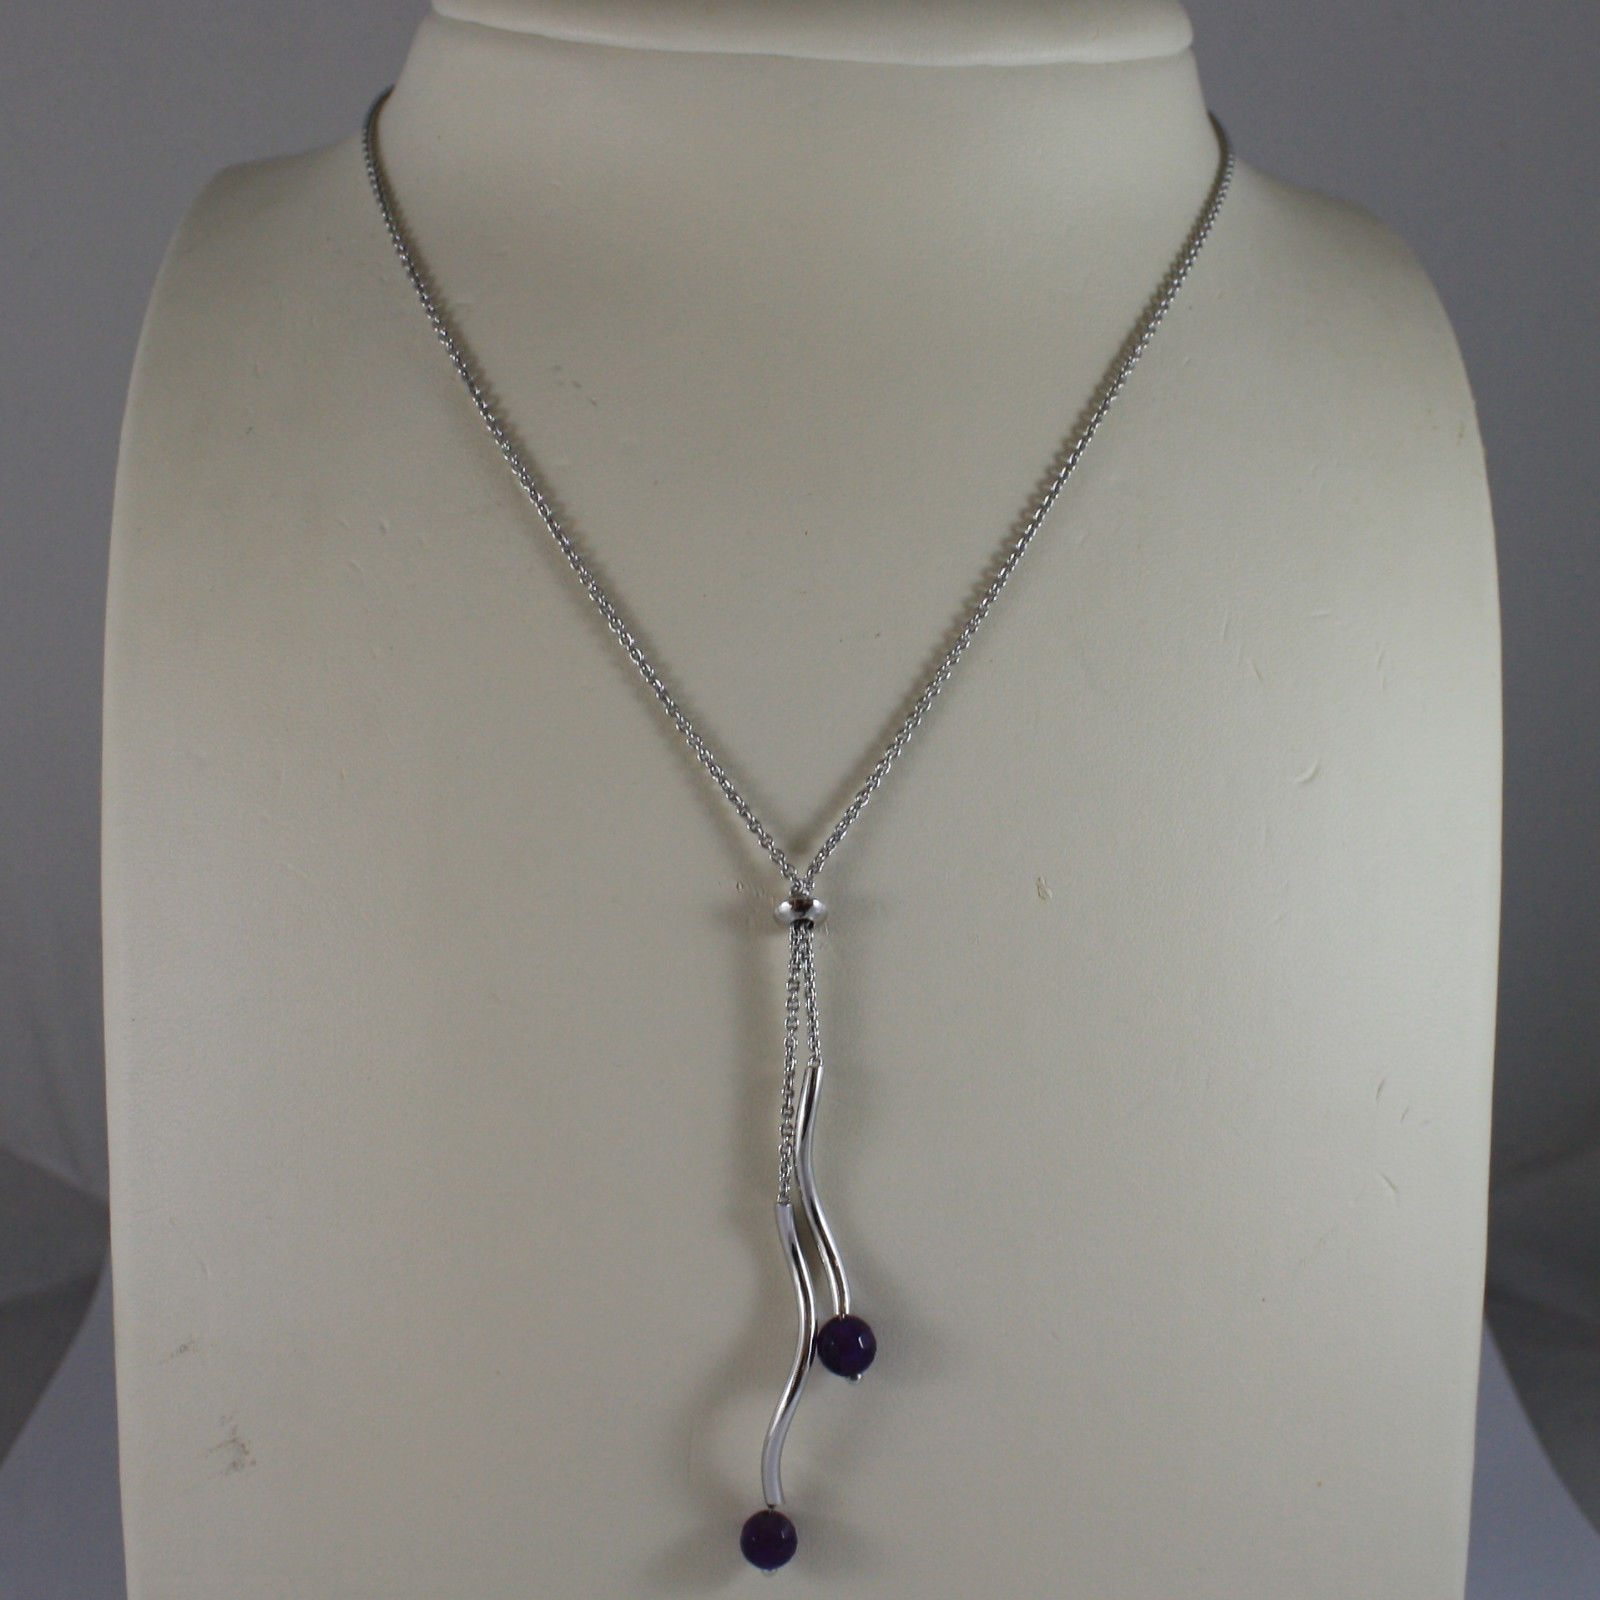 .925 SILVER RHODIUM NECKLACE WITH AMETHYST